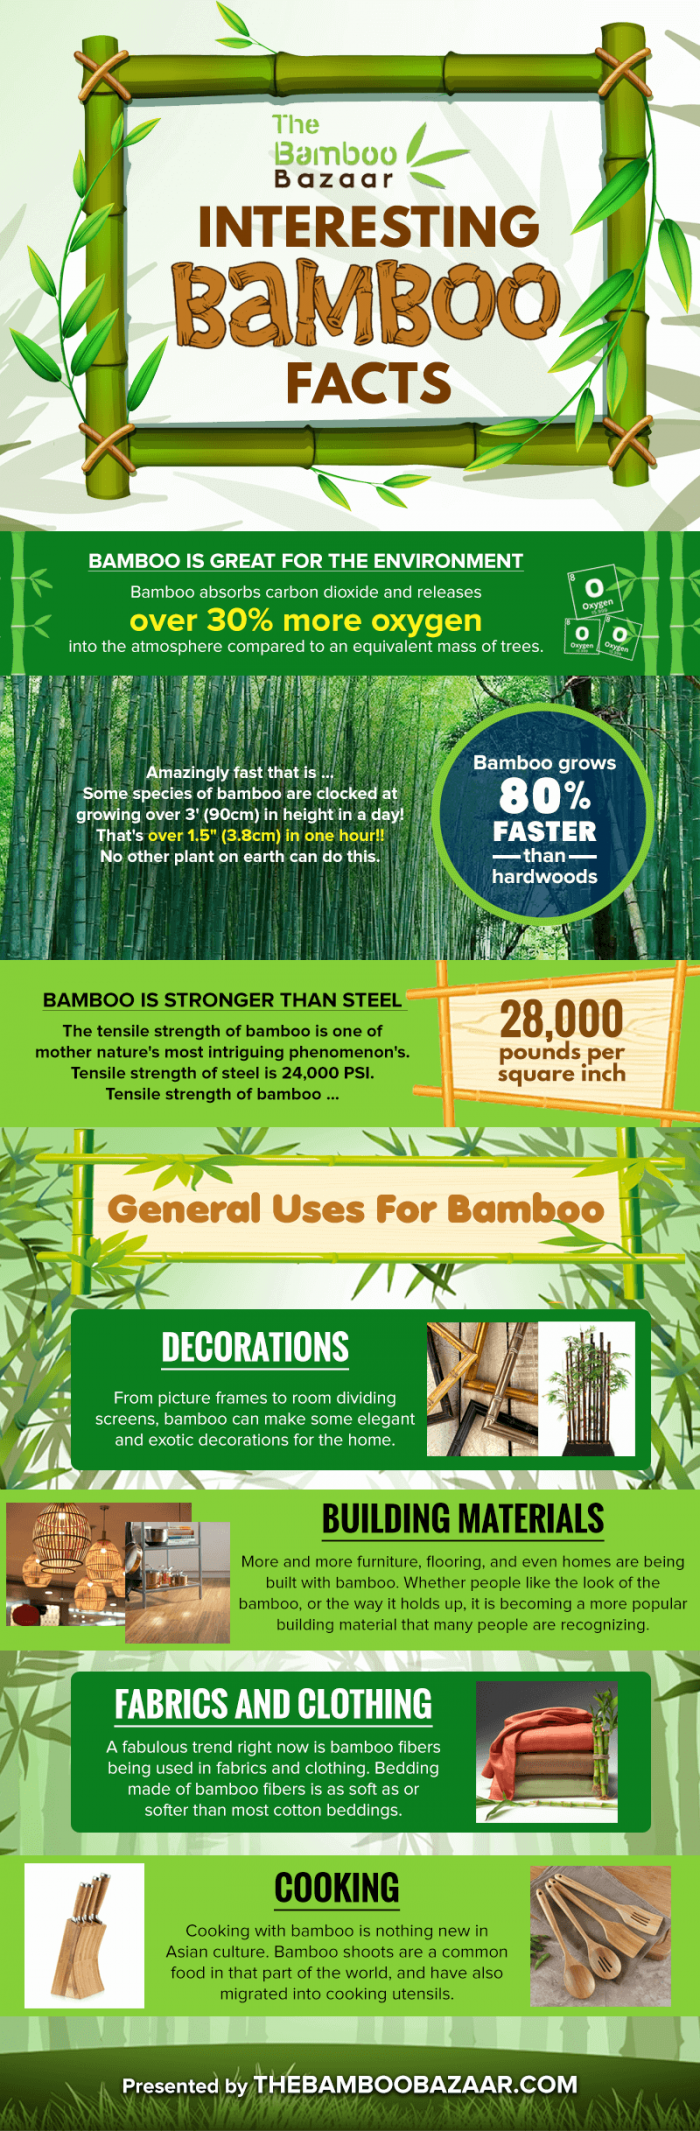 Interesting Bamboo Facts for the Curious Mind #infographic